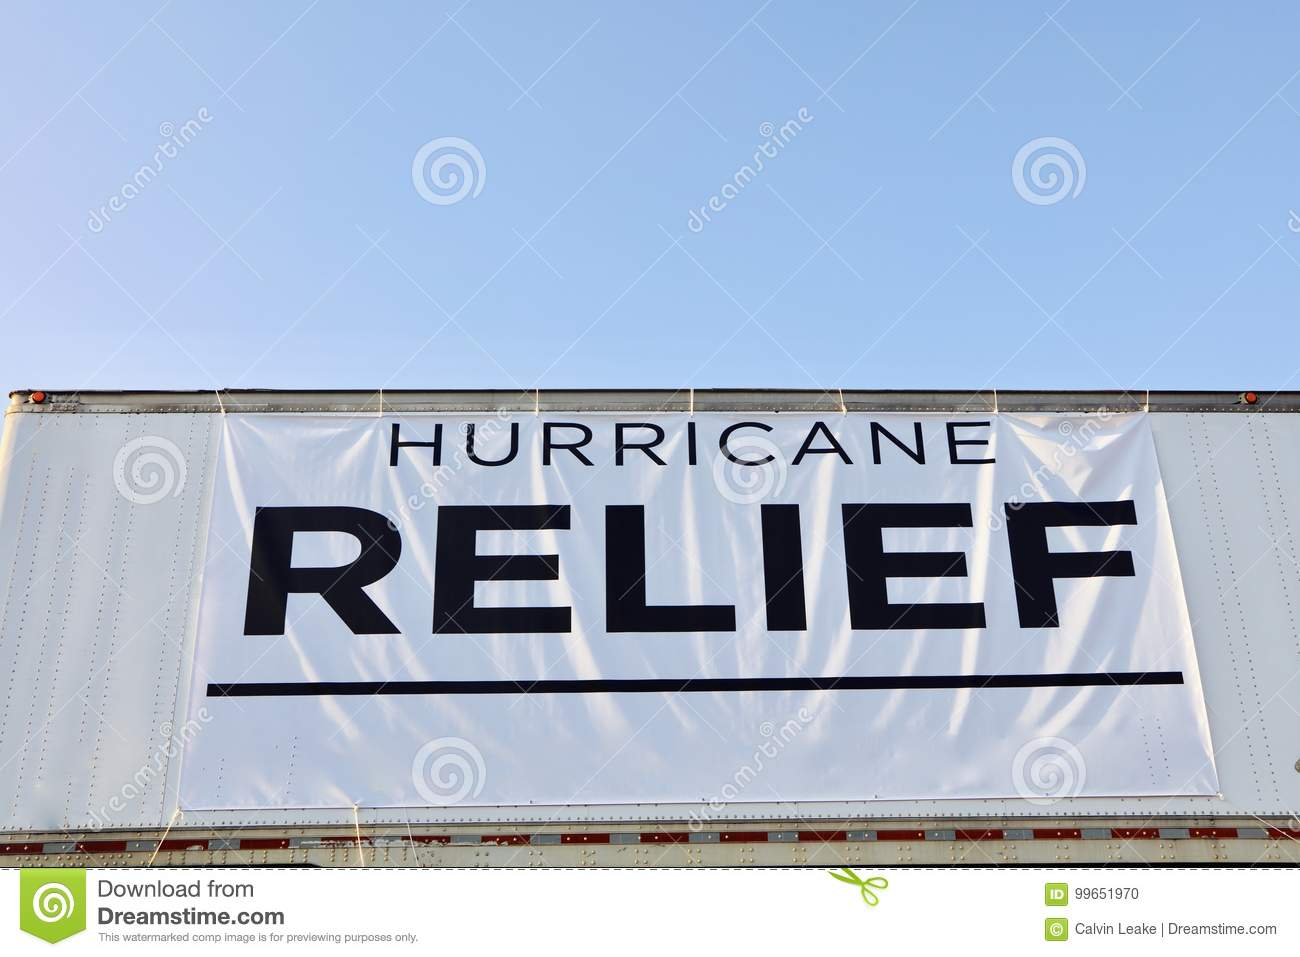 Hurricane Relief for Irma and Harvey Victims